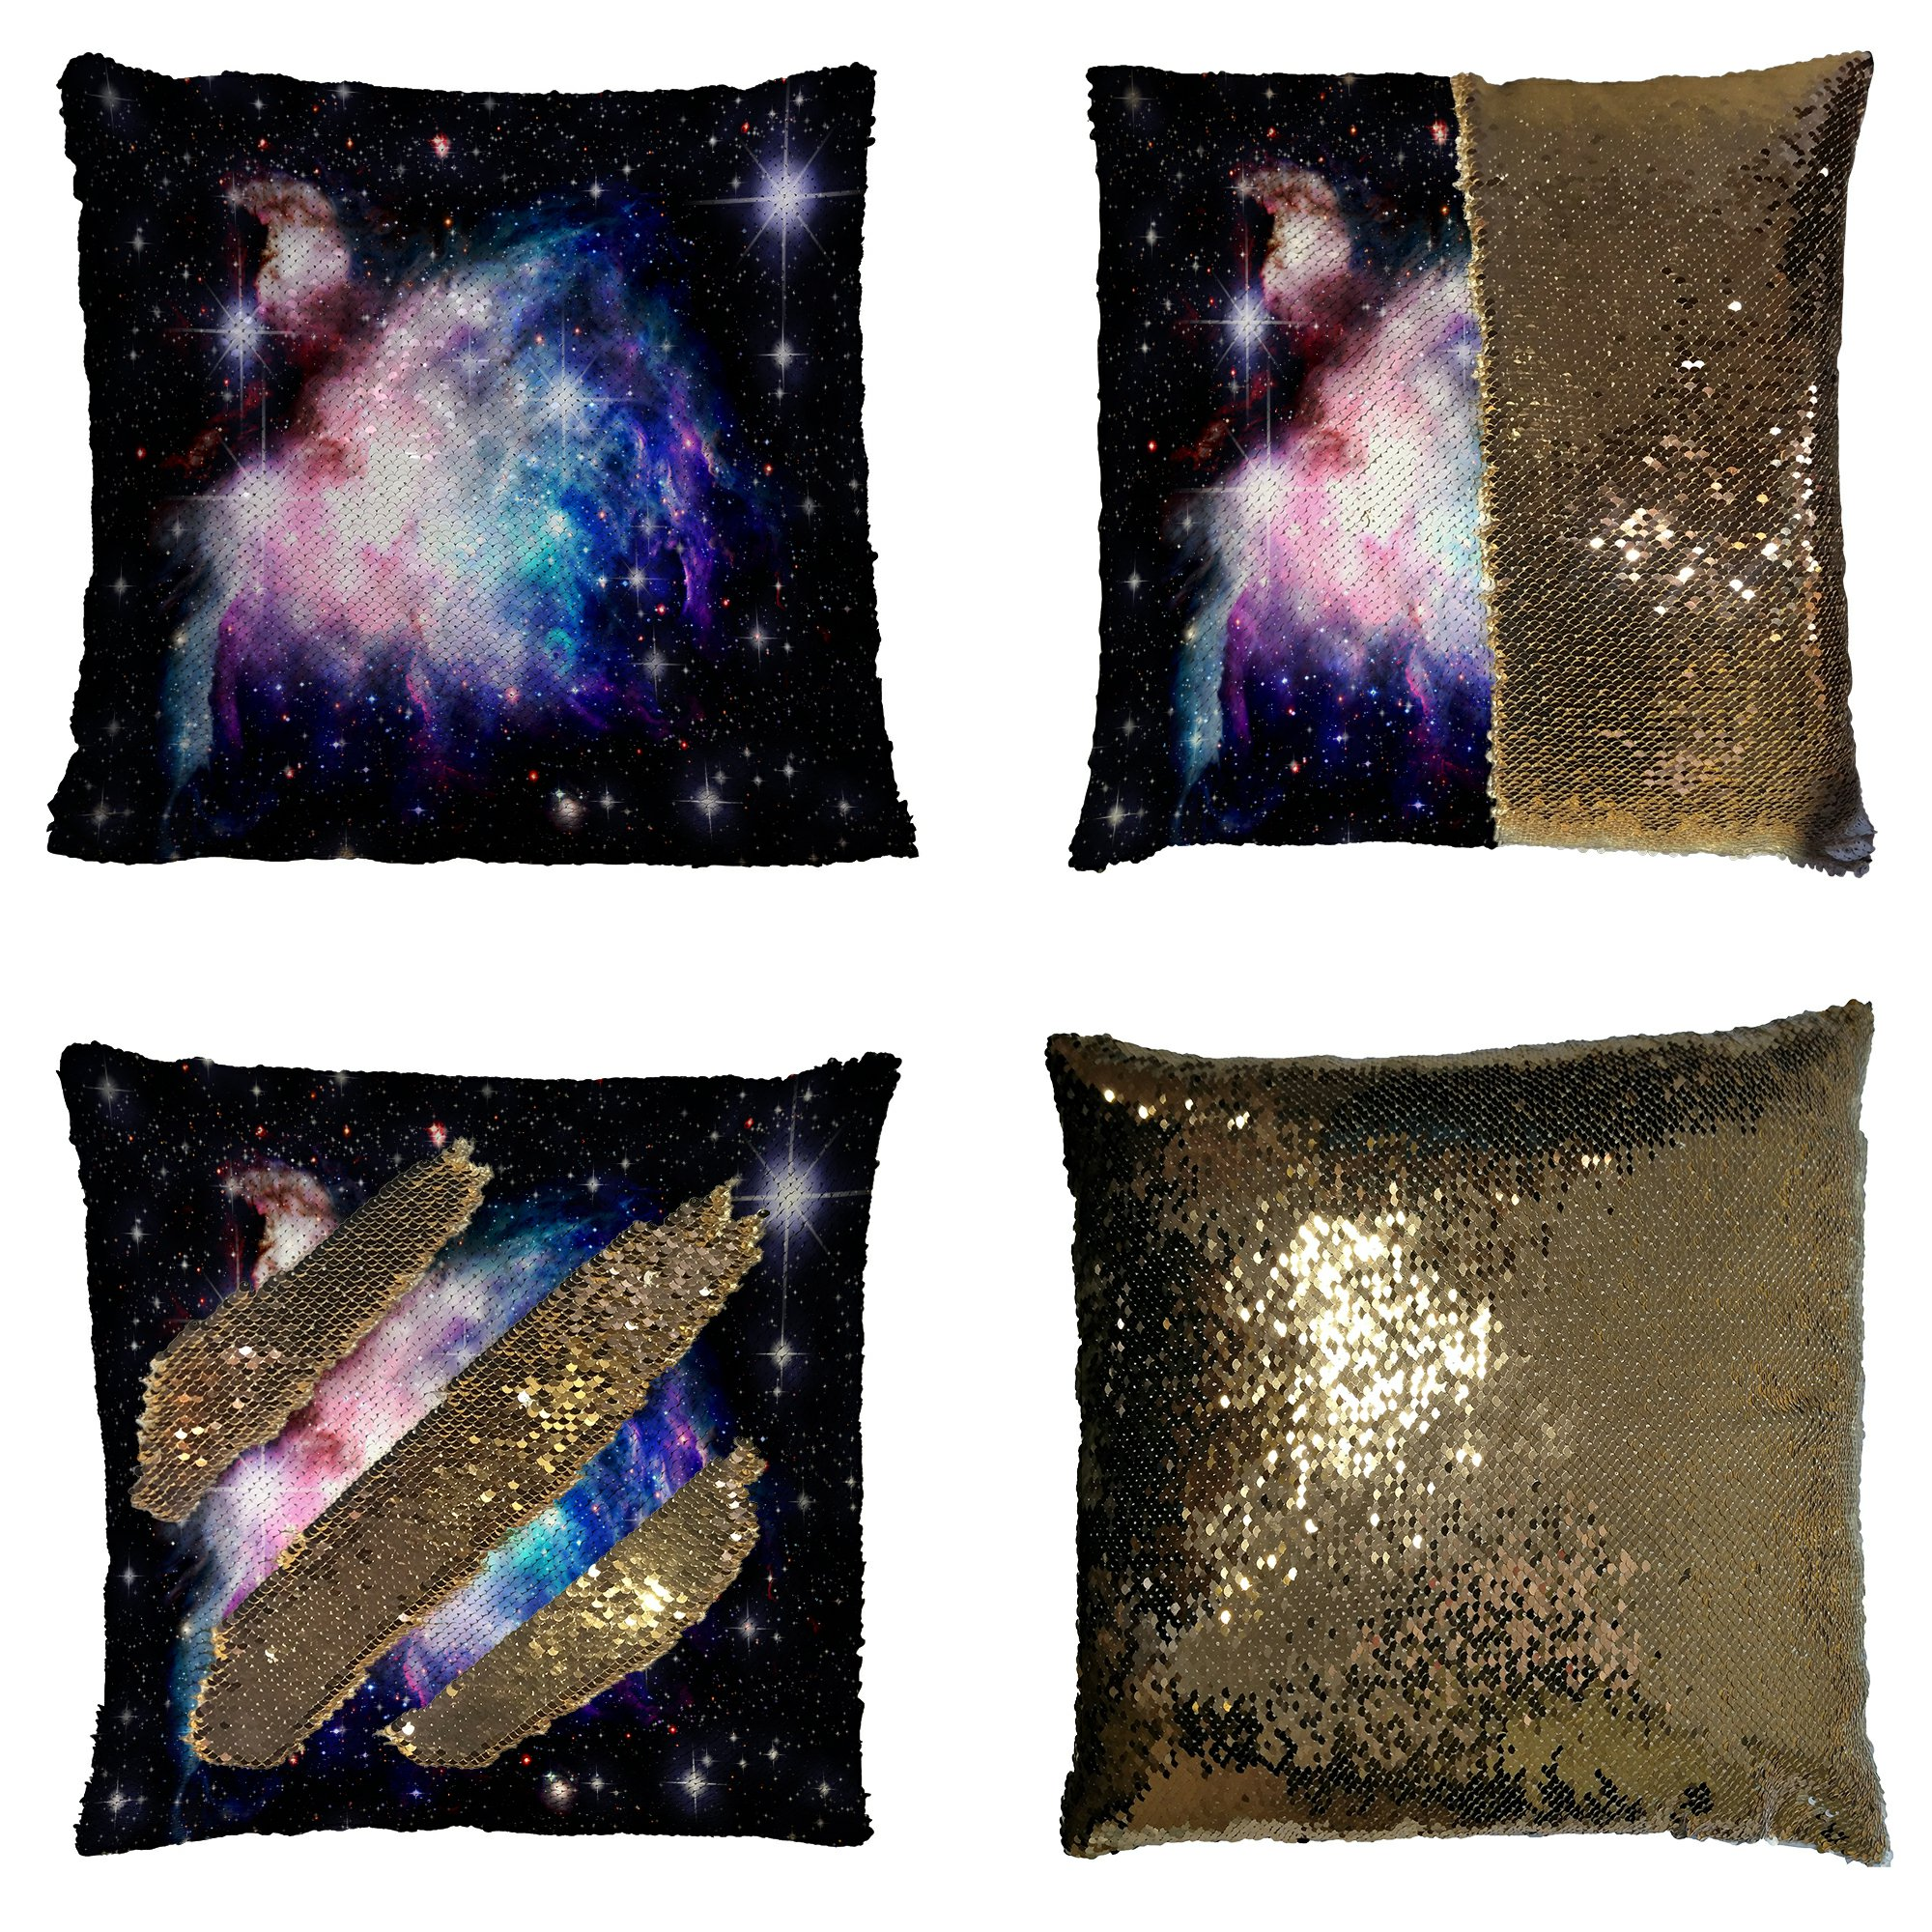 GCKG Universe Pillowcase, Deep Space Nebula with Stars Purple Bule Pink Reversible Mermaid Sequin Pillow Case Home Decor Cushion Cover 16x16 inches